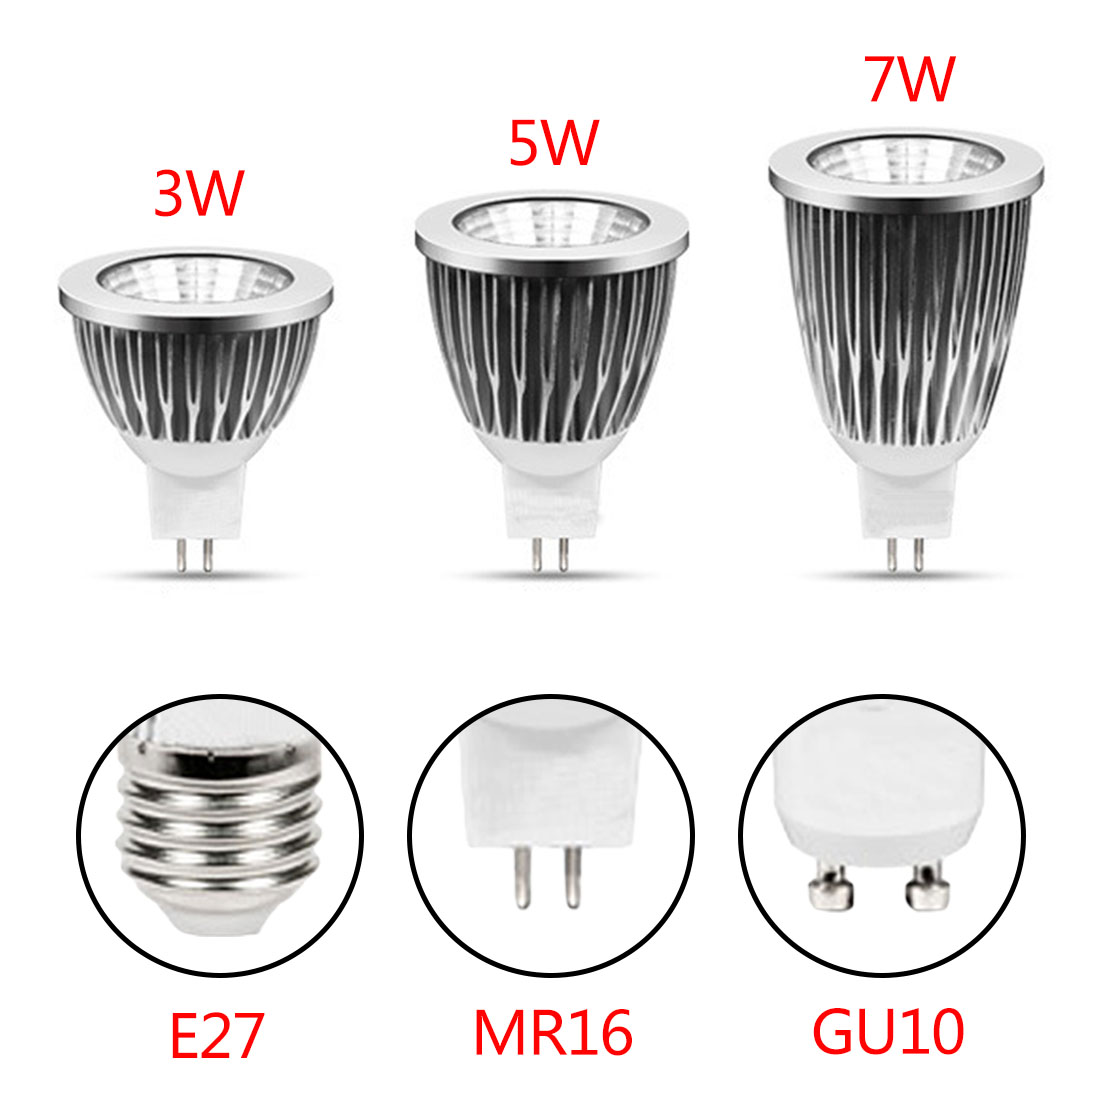 Led GU10 E27 220V 110V 12V Spot Light LED Bulb COB MR16 2700K Warm White 3W 5W 7W bulb replace energy saving lamp